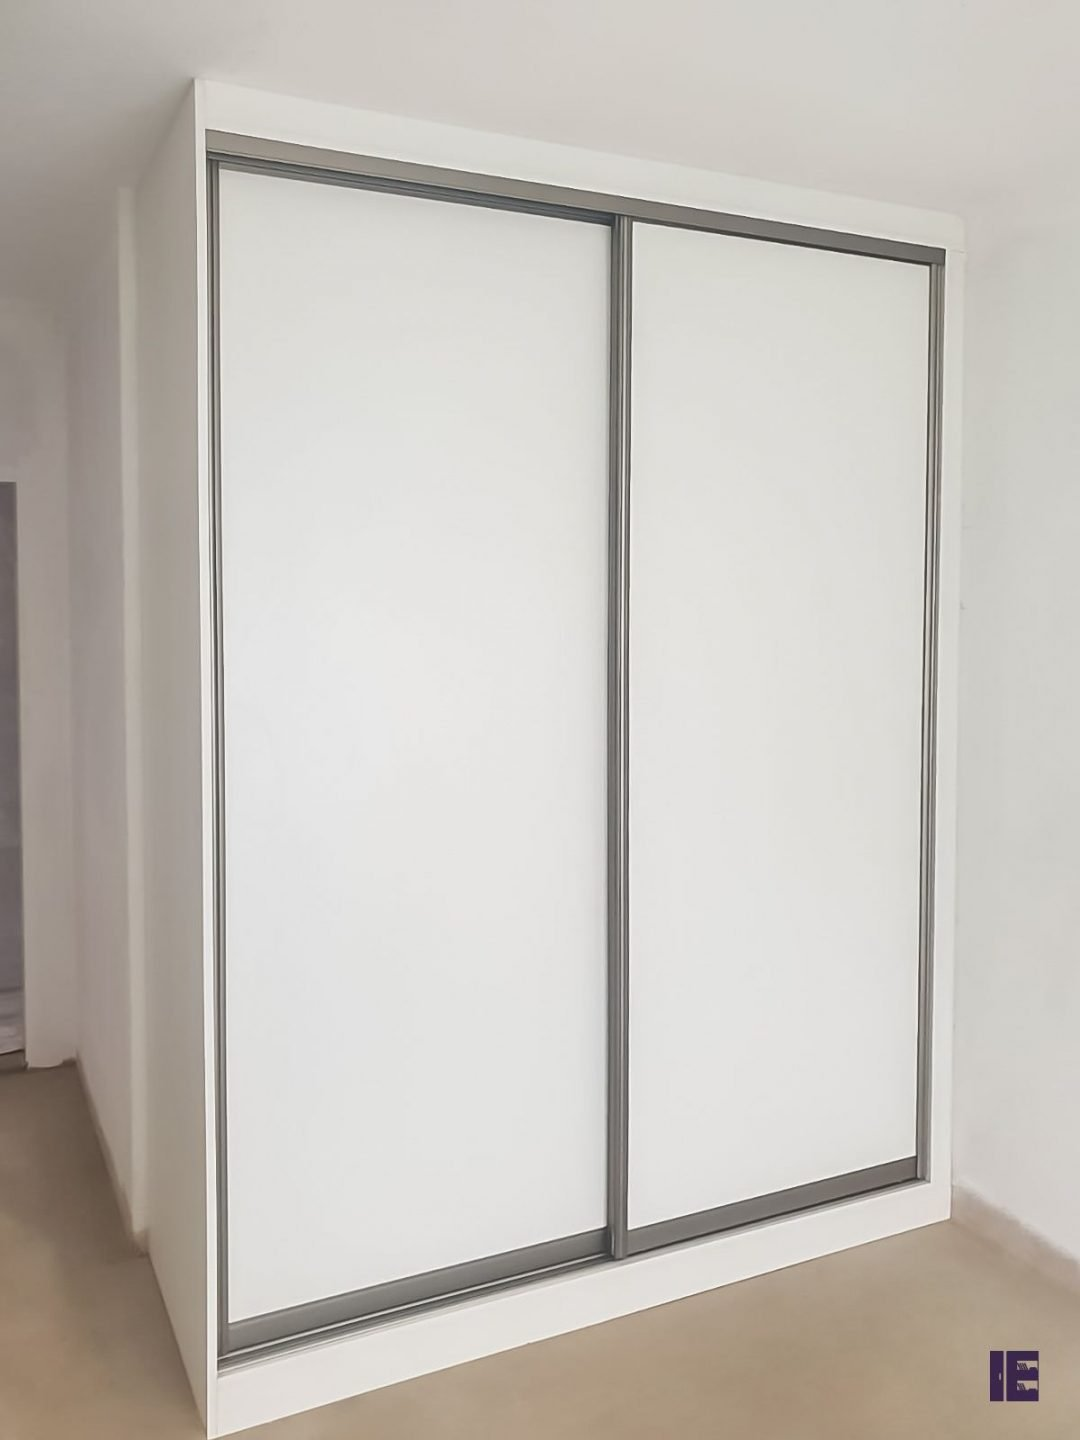 Sliding Wardrobe Stanmore - Harrow